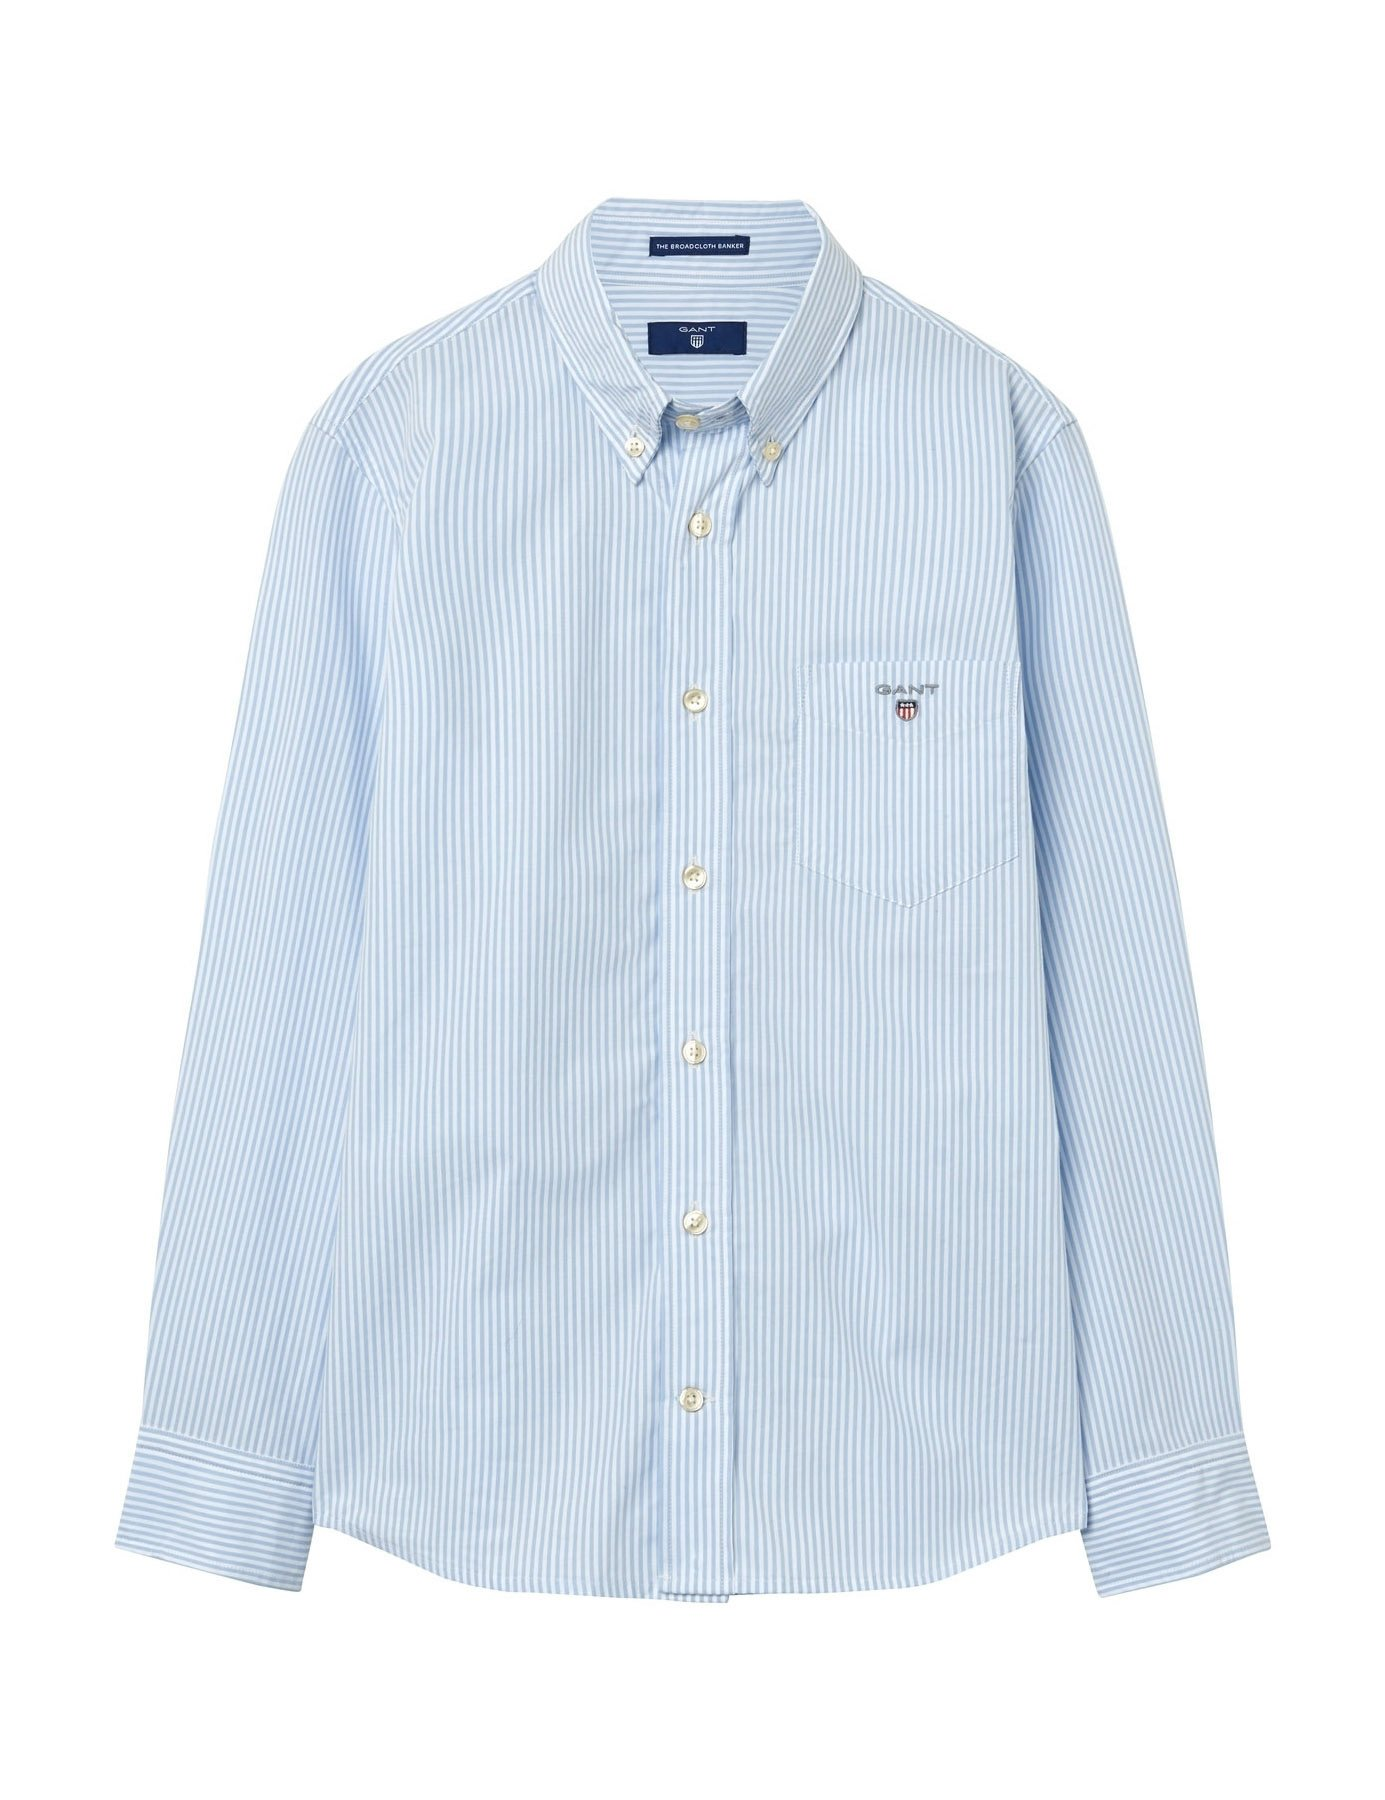 Gant Boy's Blue Stripped Shirt in Size 13-14 Years (158-164 cm) Blue